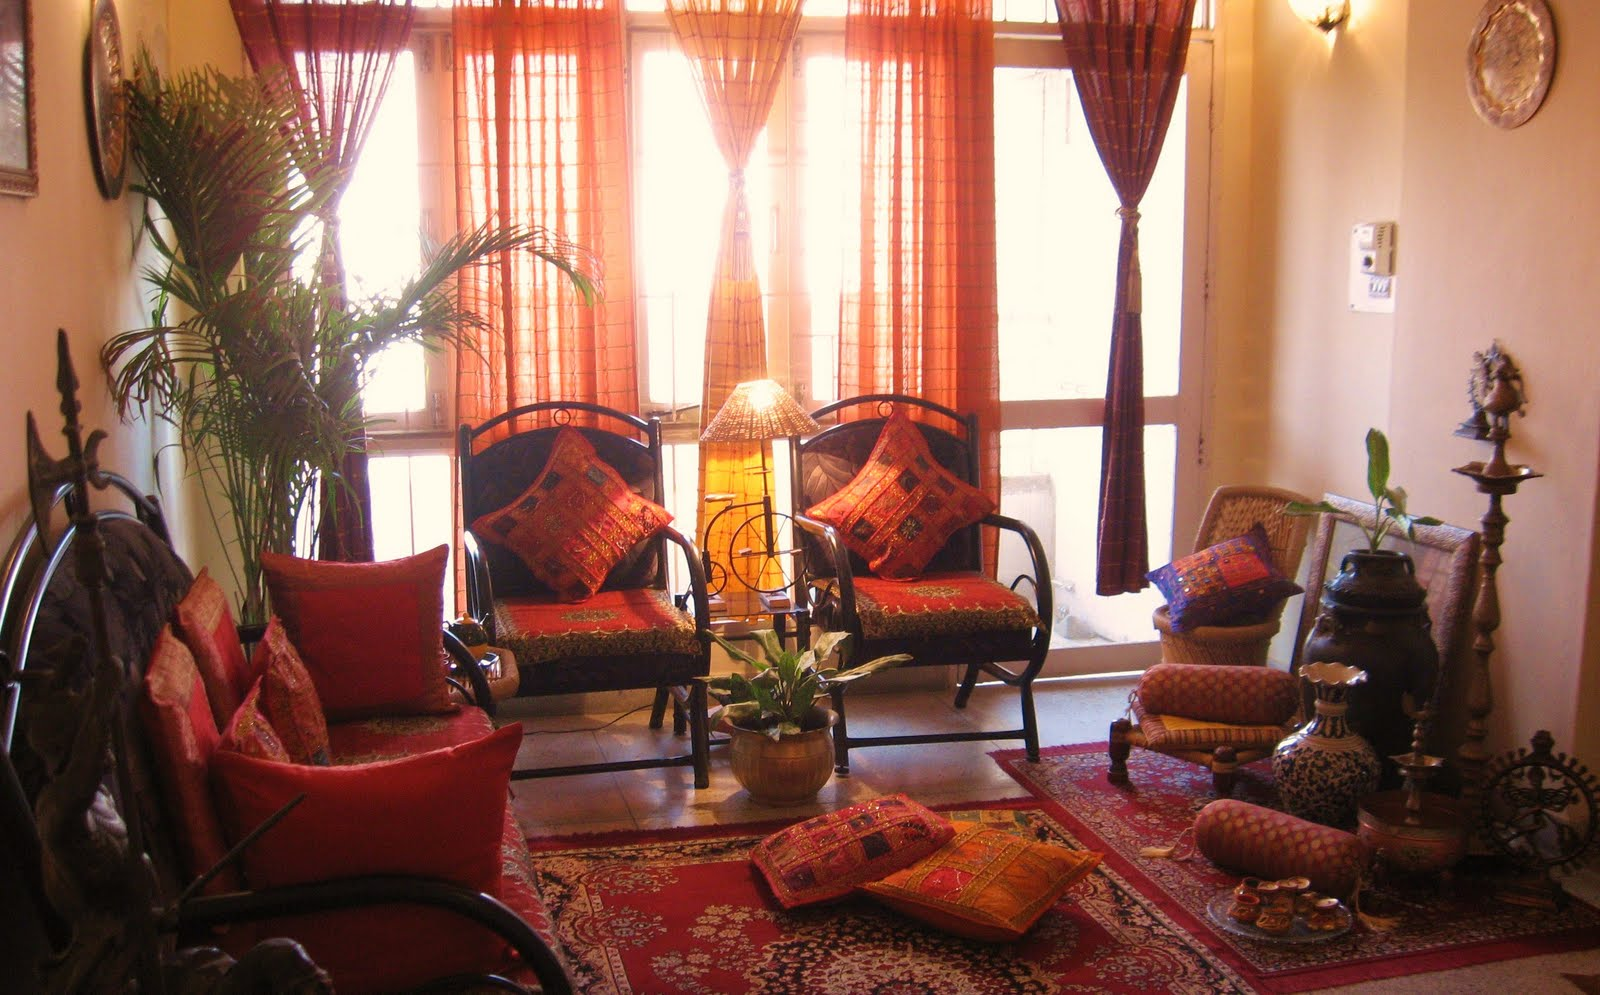 Indian Living Room Ideas Interior Design Indian Interiors Living Rooms Decor